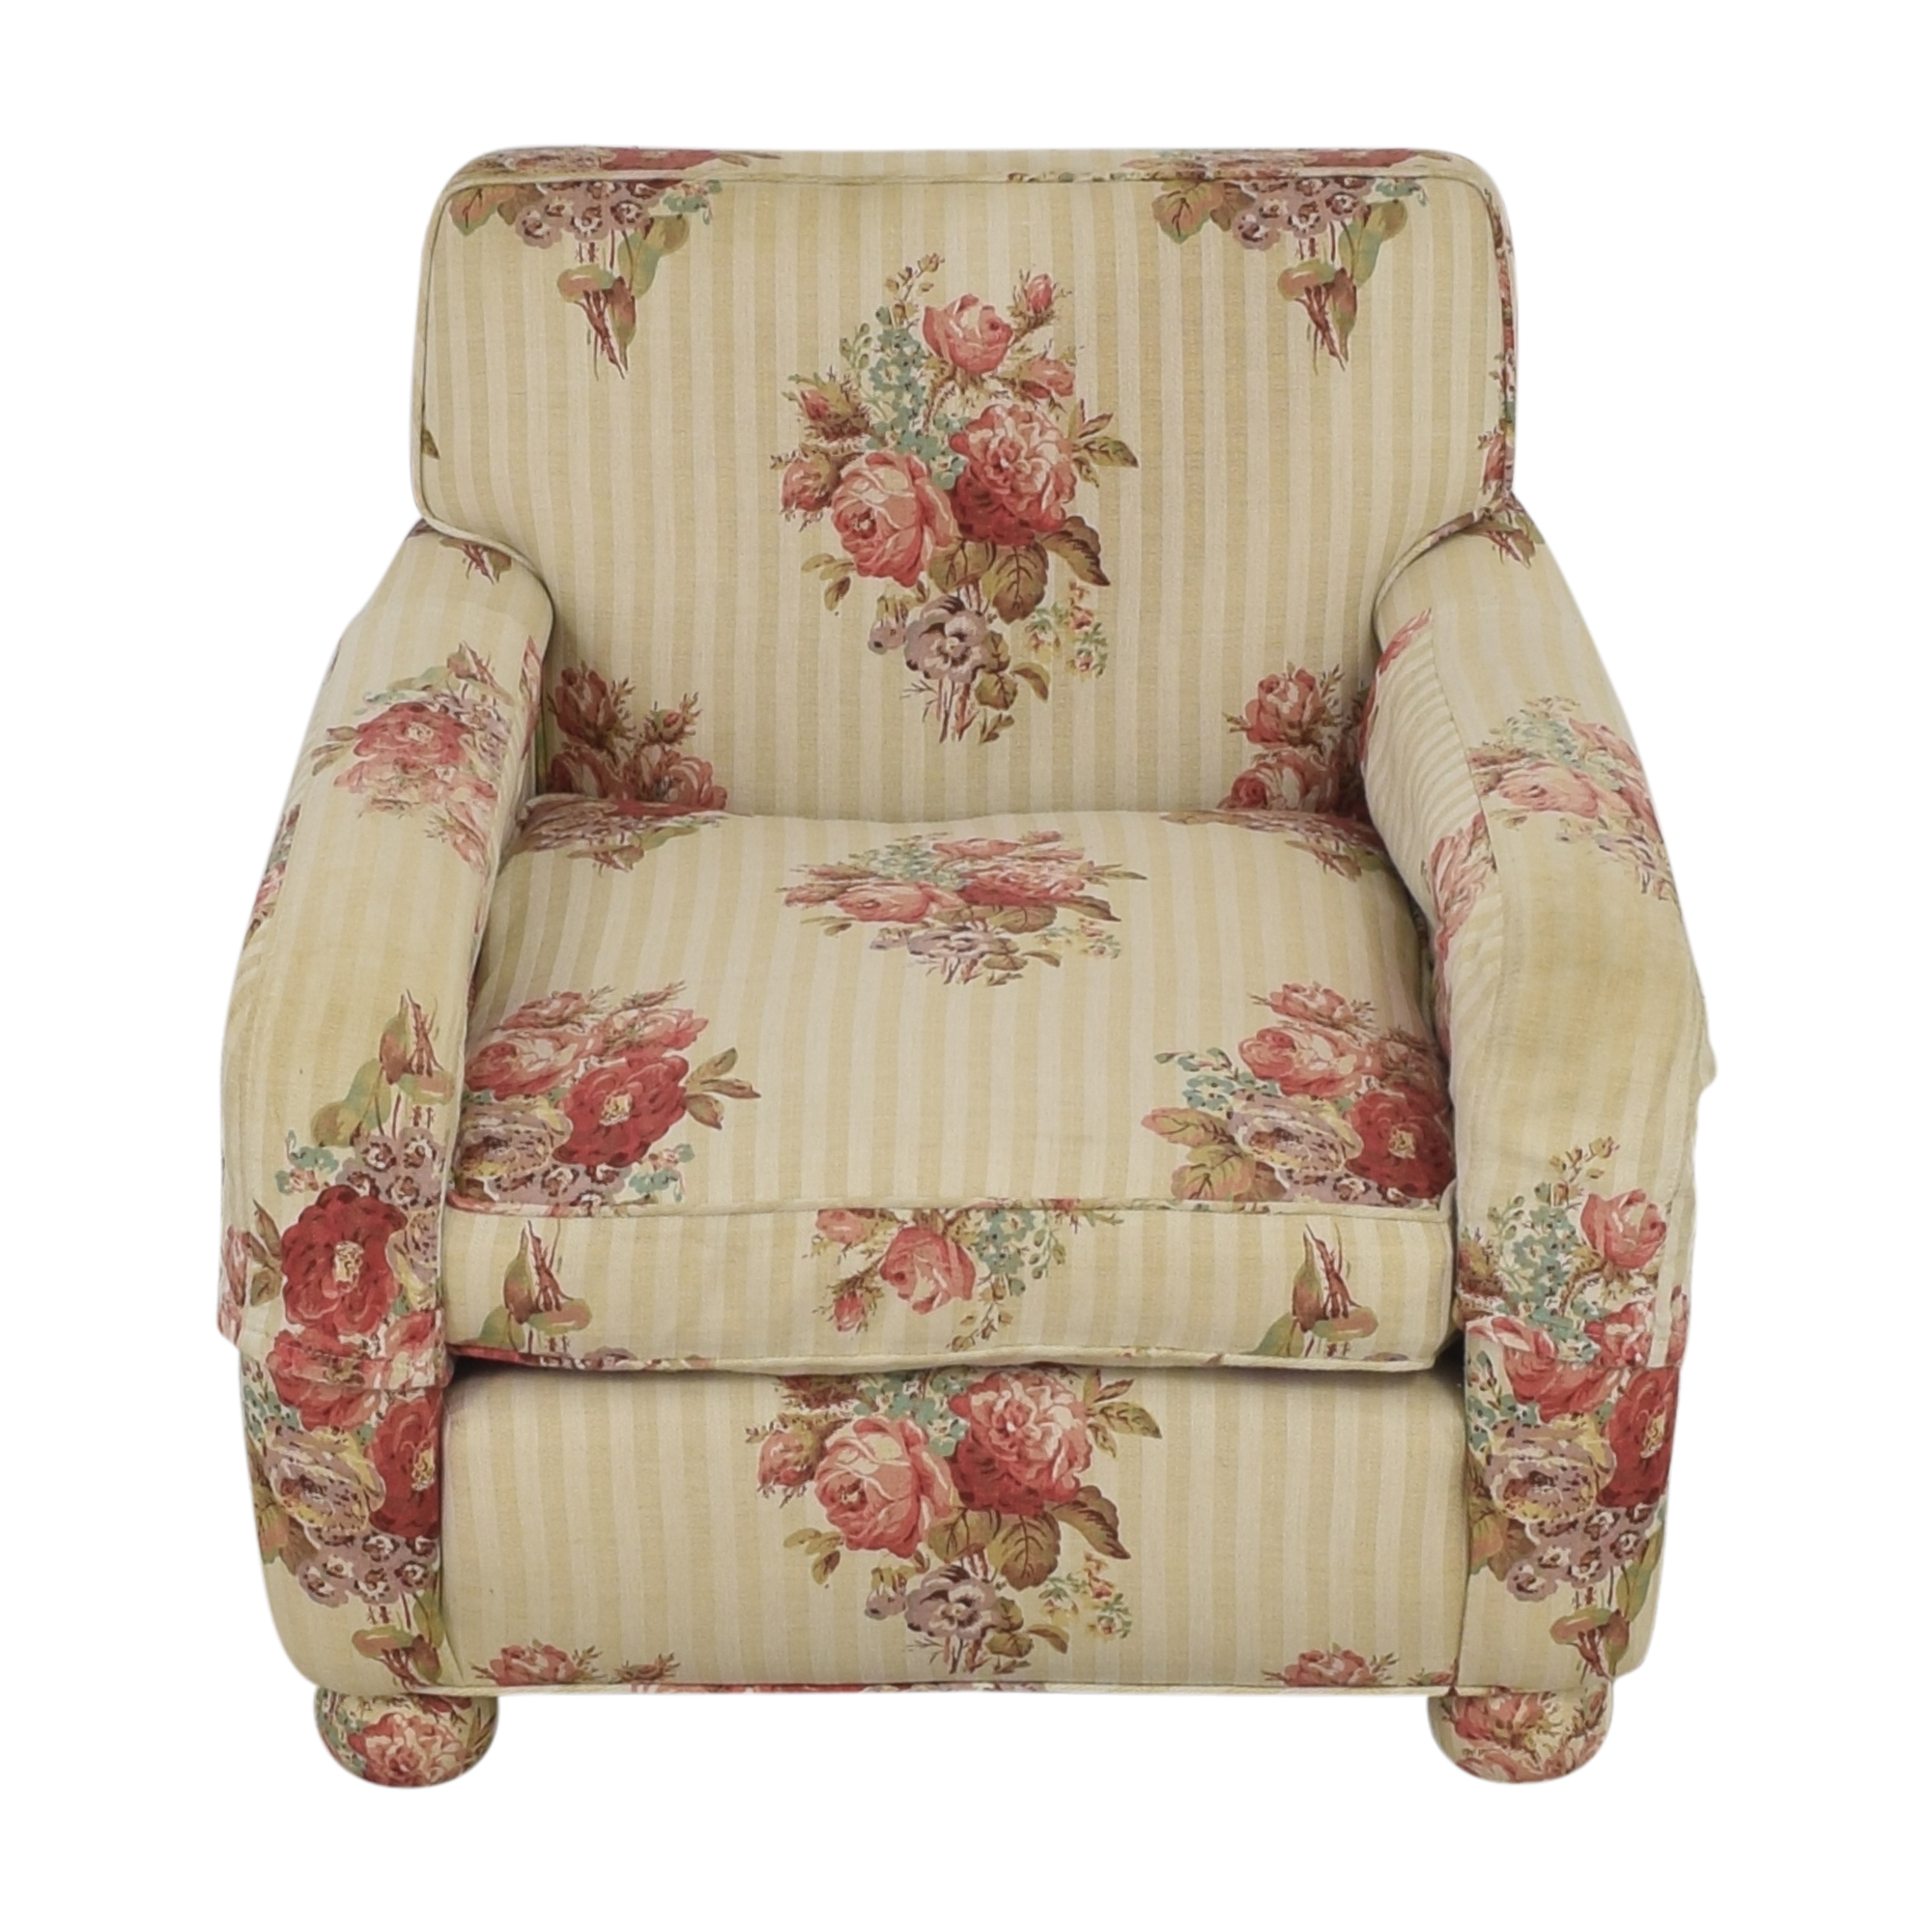 Hickory Chair Hickory Chair Upholstered Club Chair discount